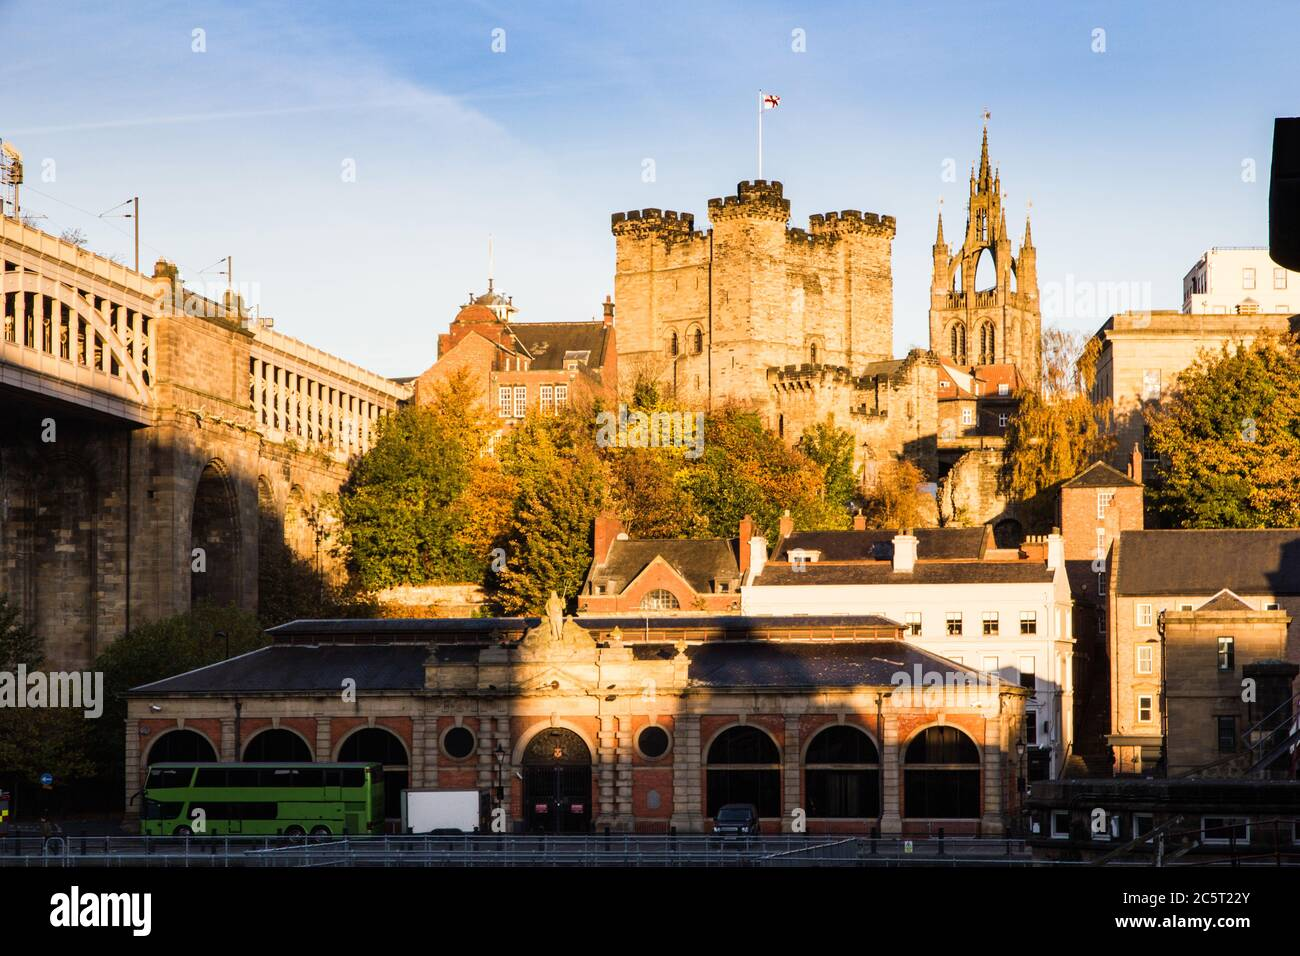 The imposing Norman aged castle which gives the city of Newcastle Upon Tyne its name Stock Photo